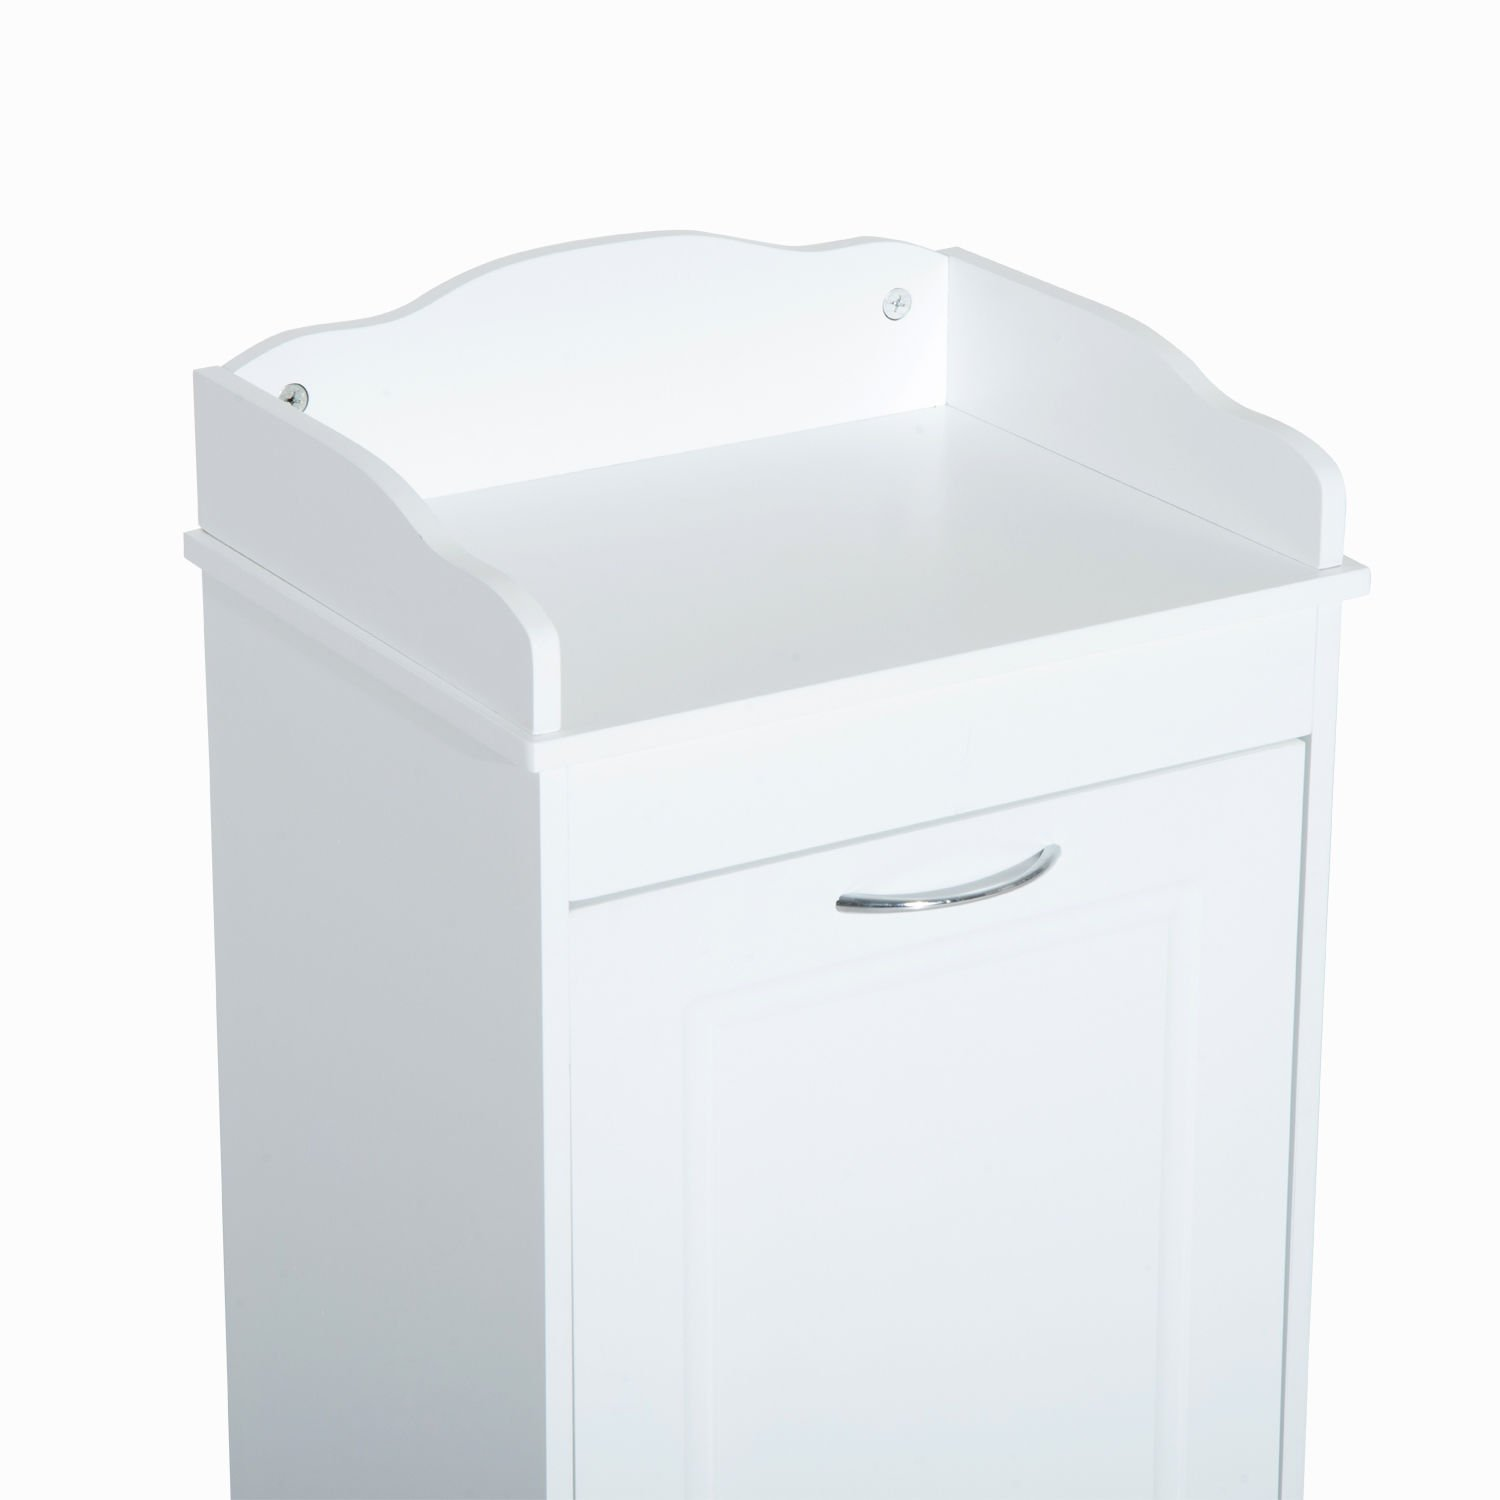 New White Bathroom Hamper Wood Laundry Tilt Out Basket Storage Bench Furniture Cabinet by totoshop (Image #4)